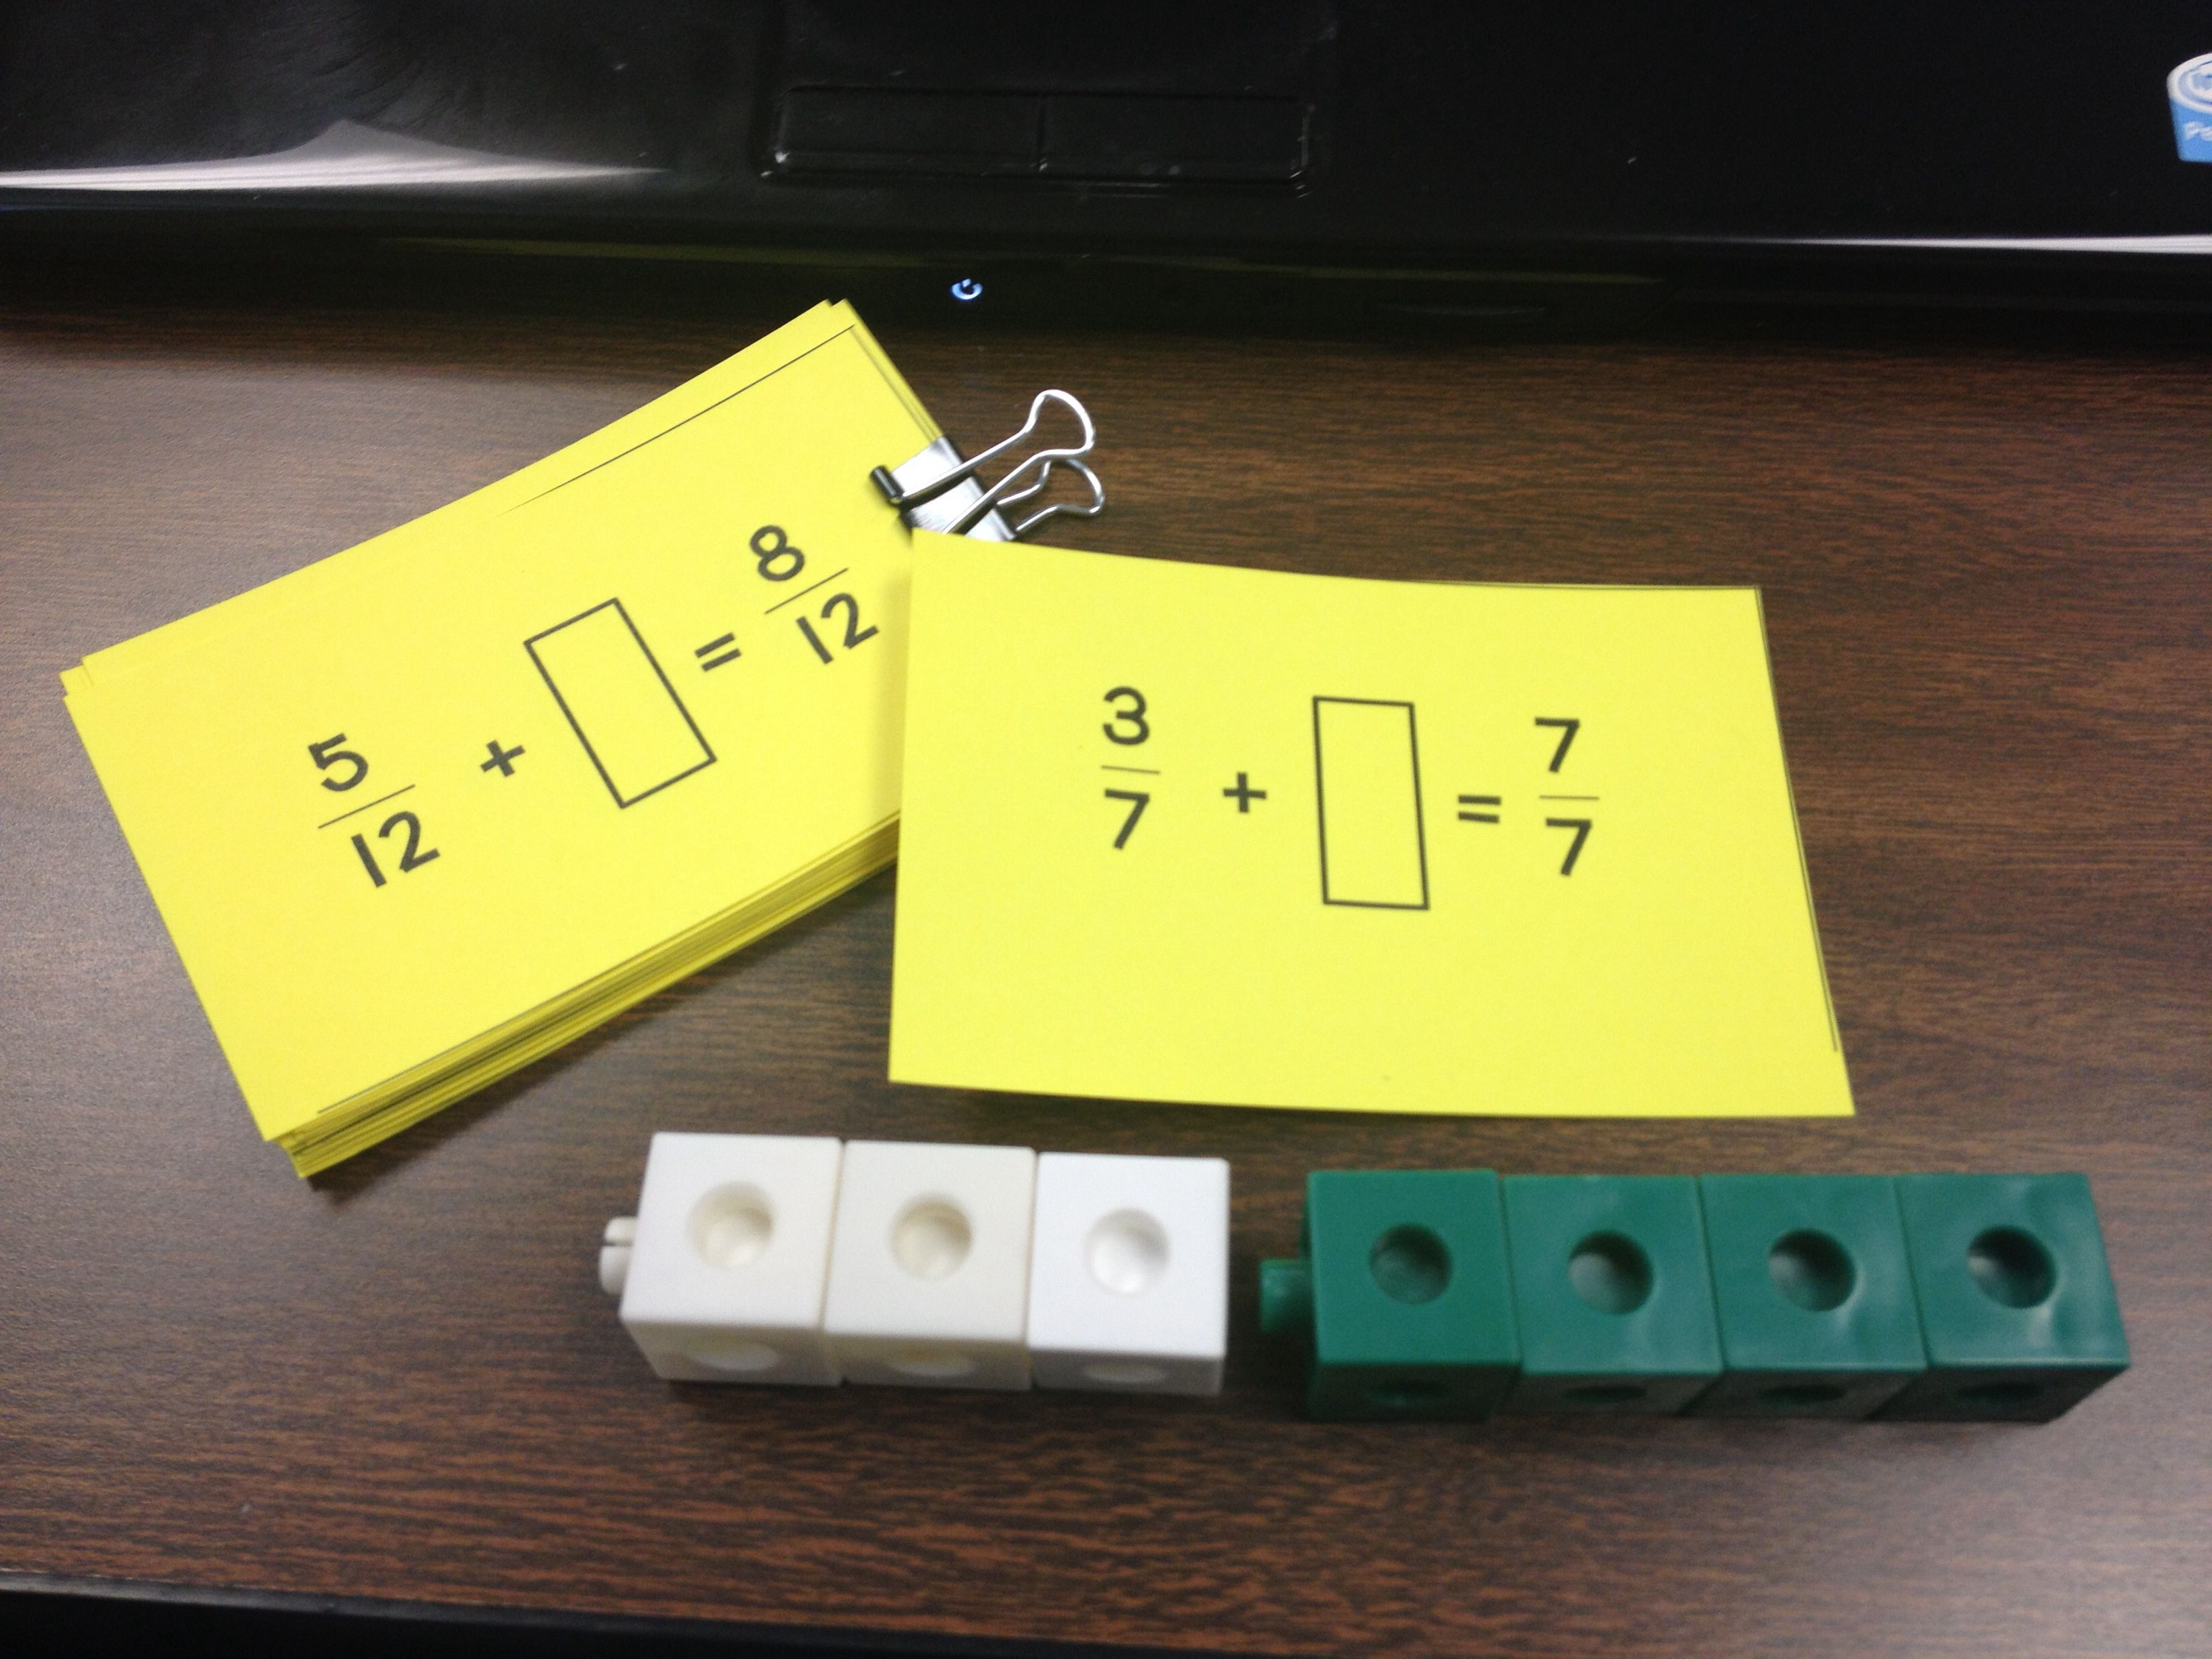 Composing And Decomposing Fractions With Unifix Cubes